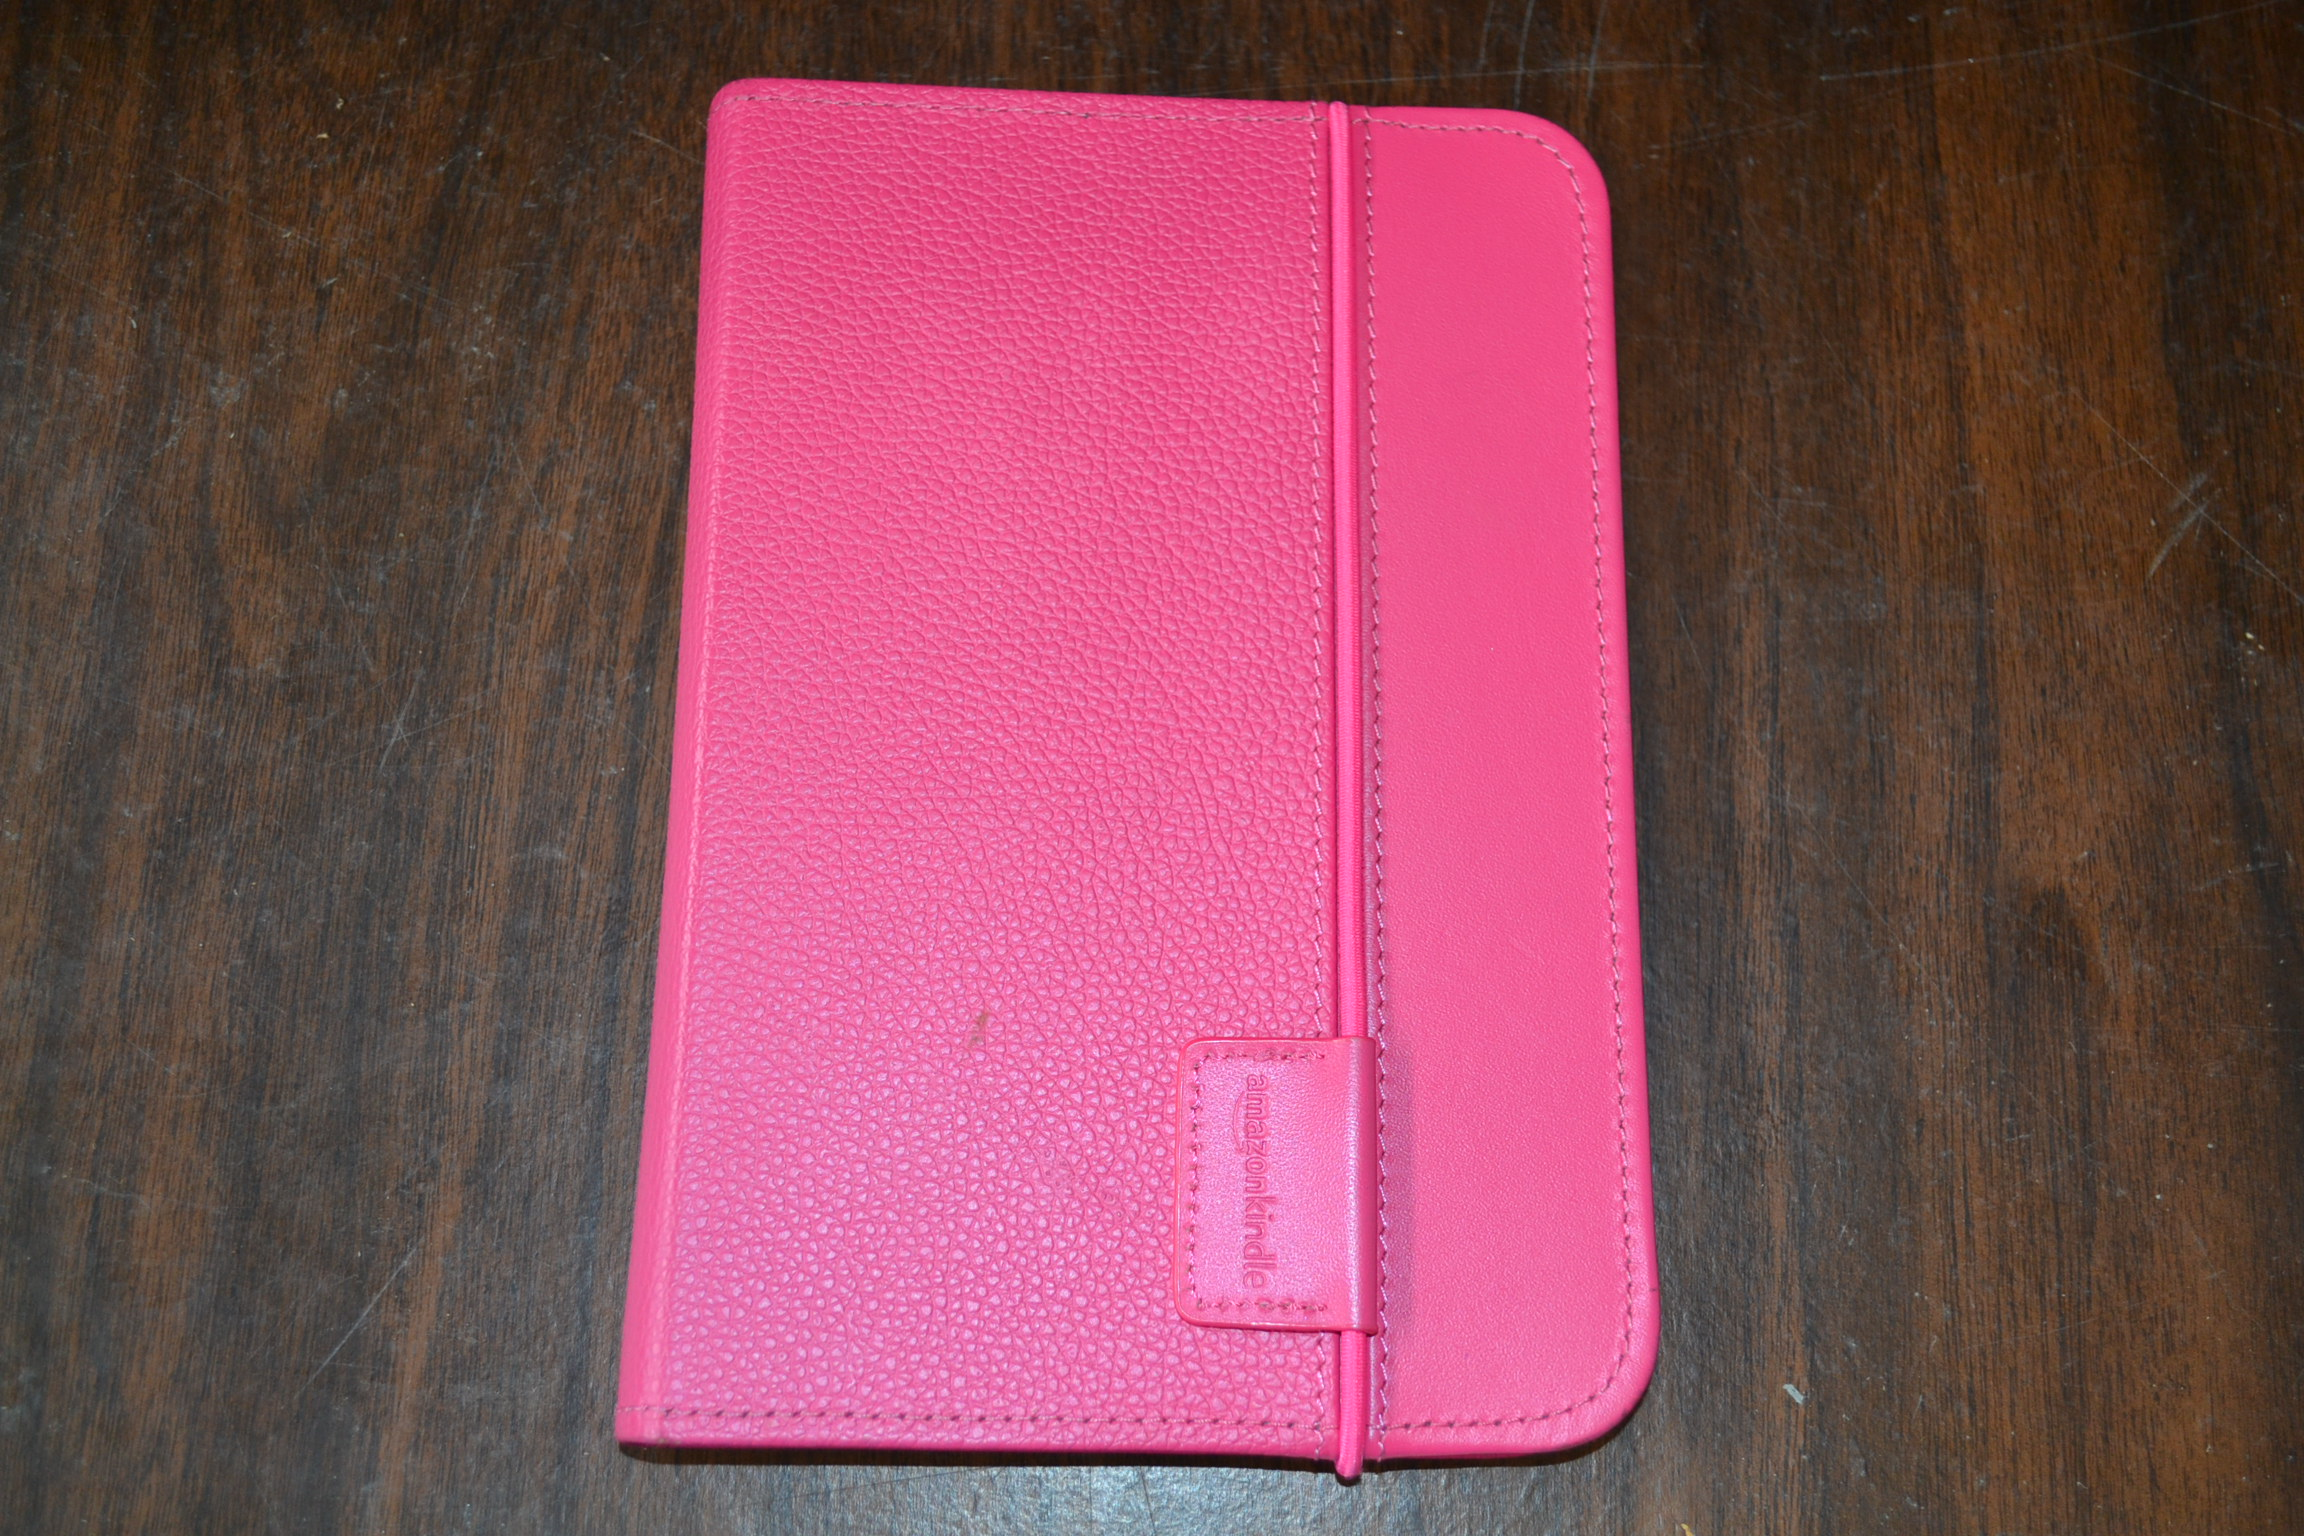 Kindle Lighted Leather Cover Hot Pink Fits Kindle Keyboard